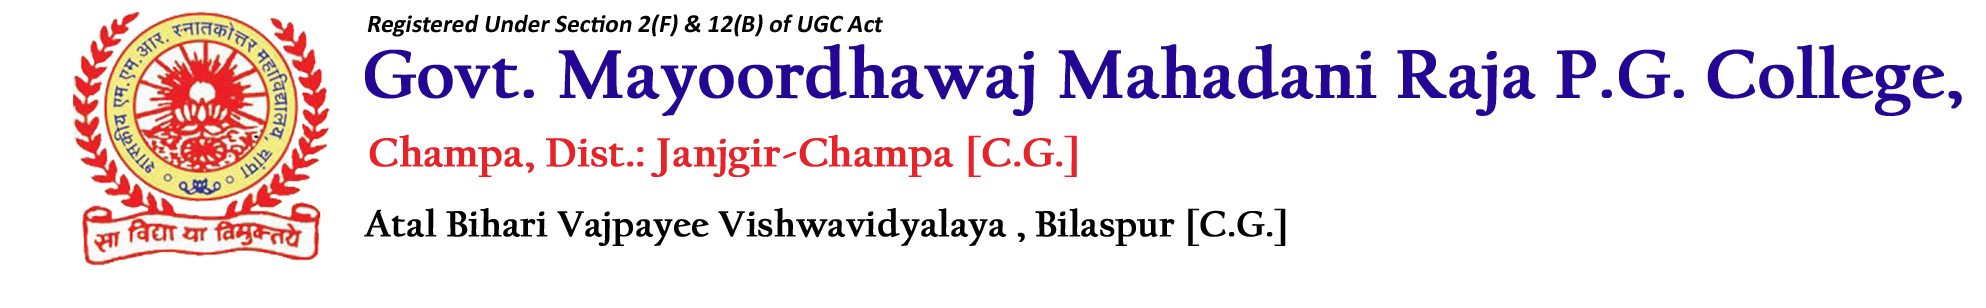 Powered by logo -Govt. Mayoordhawaj Mahadani Raja P.G. College, Champa - Ravi Solutions